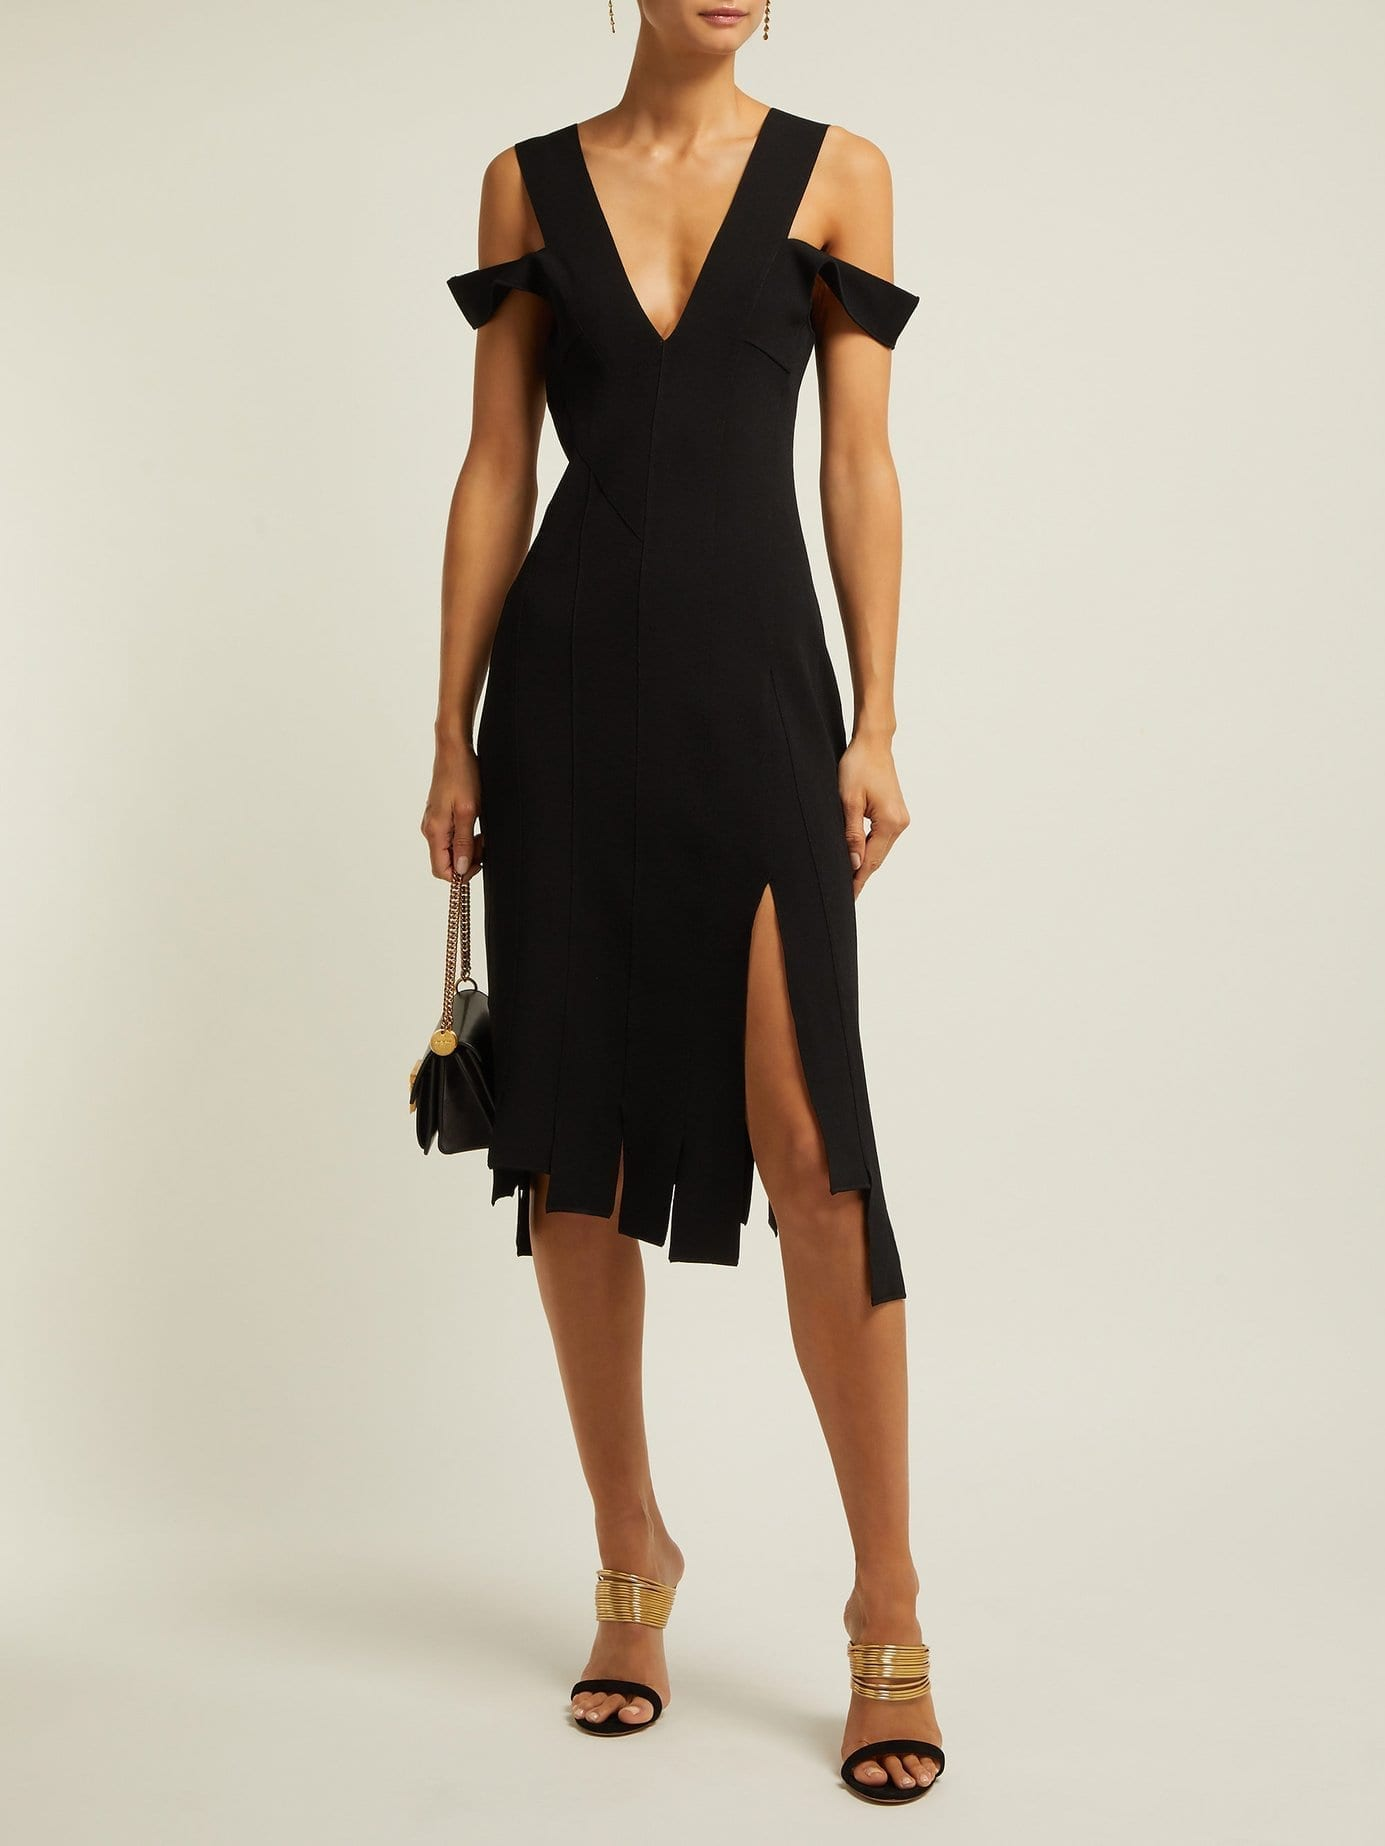 ALTUZARRA Tiziana Stretch-Crepe Asymmetric Midi Black Dress